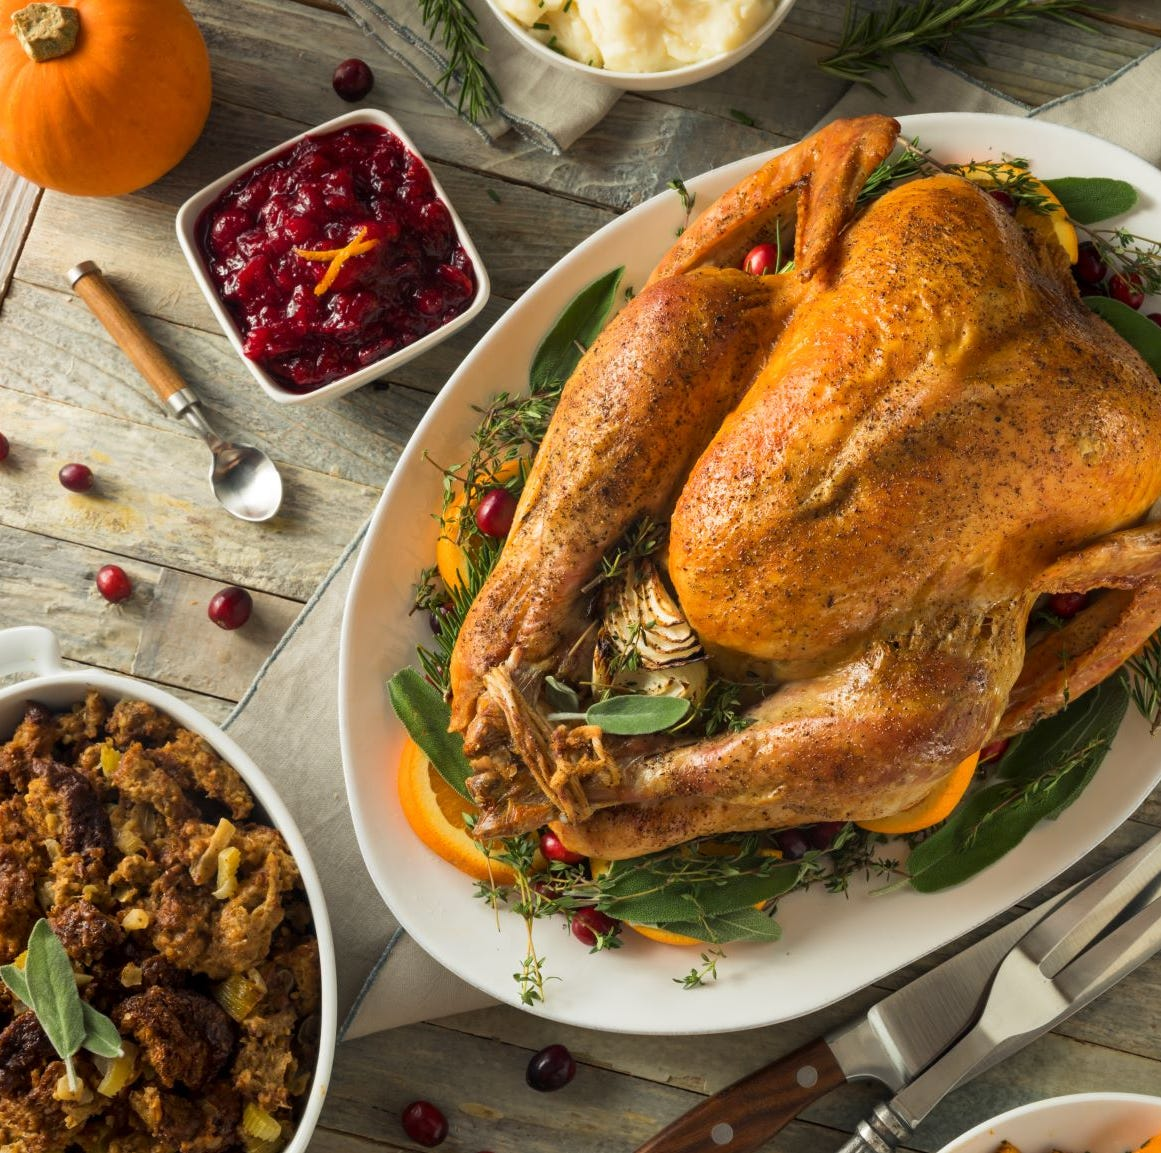 Not in the mood to cook this Thanksgiving? No worries. Several Brevard restaurants will be serving holiday meals.